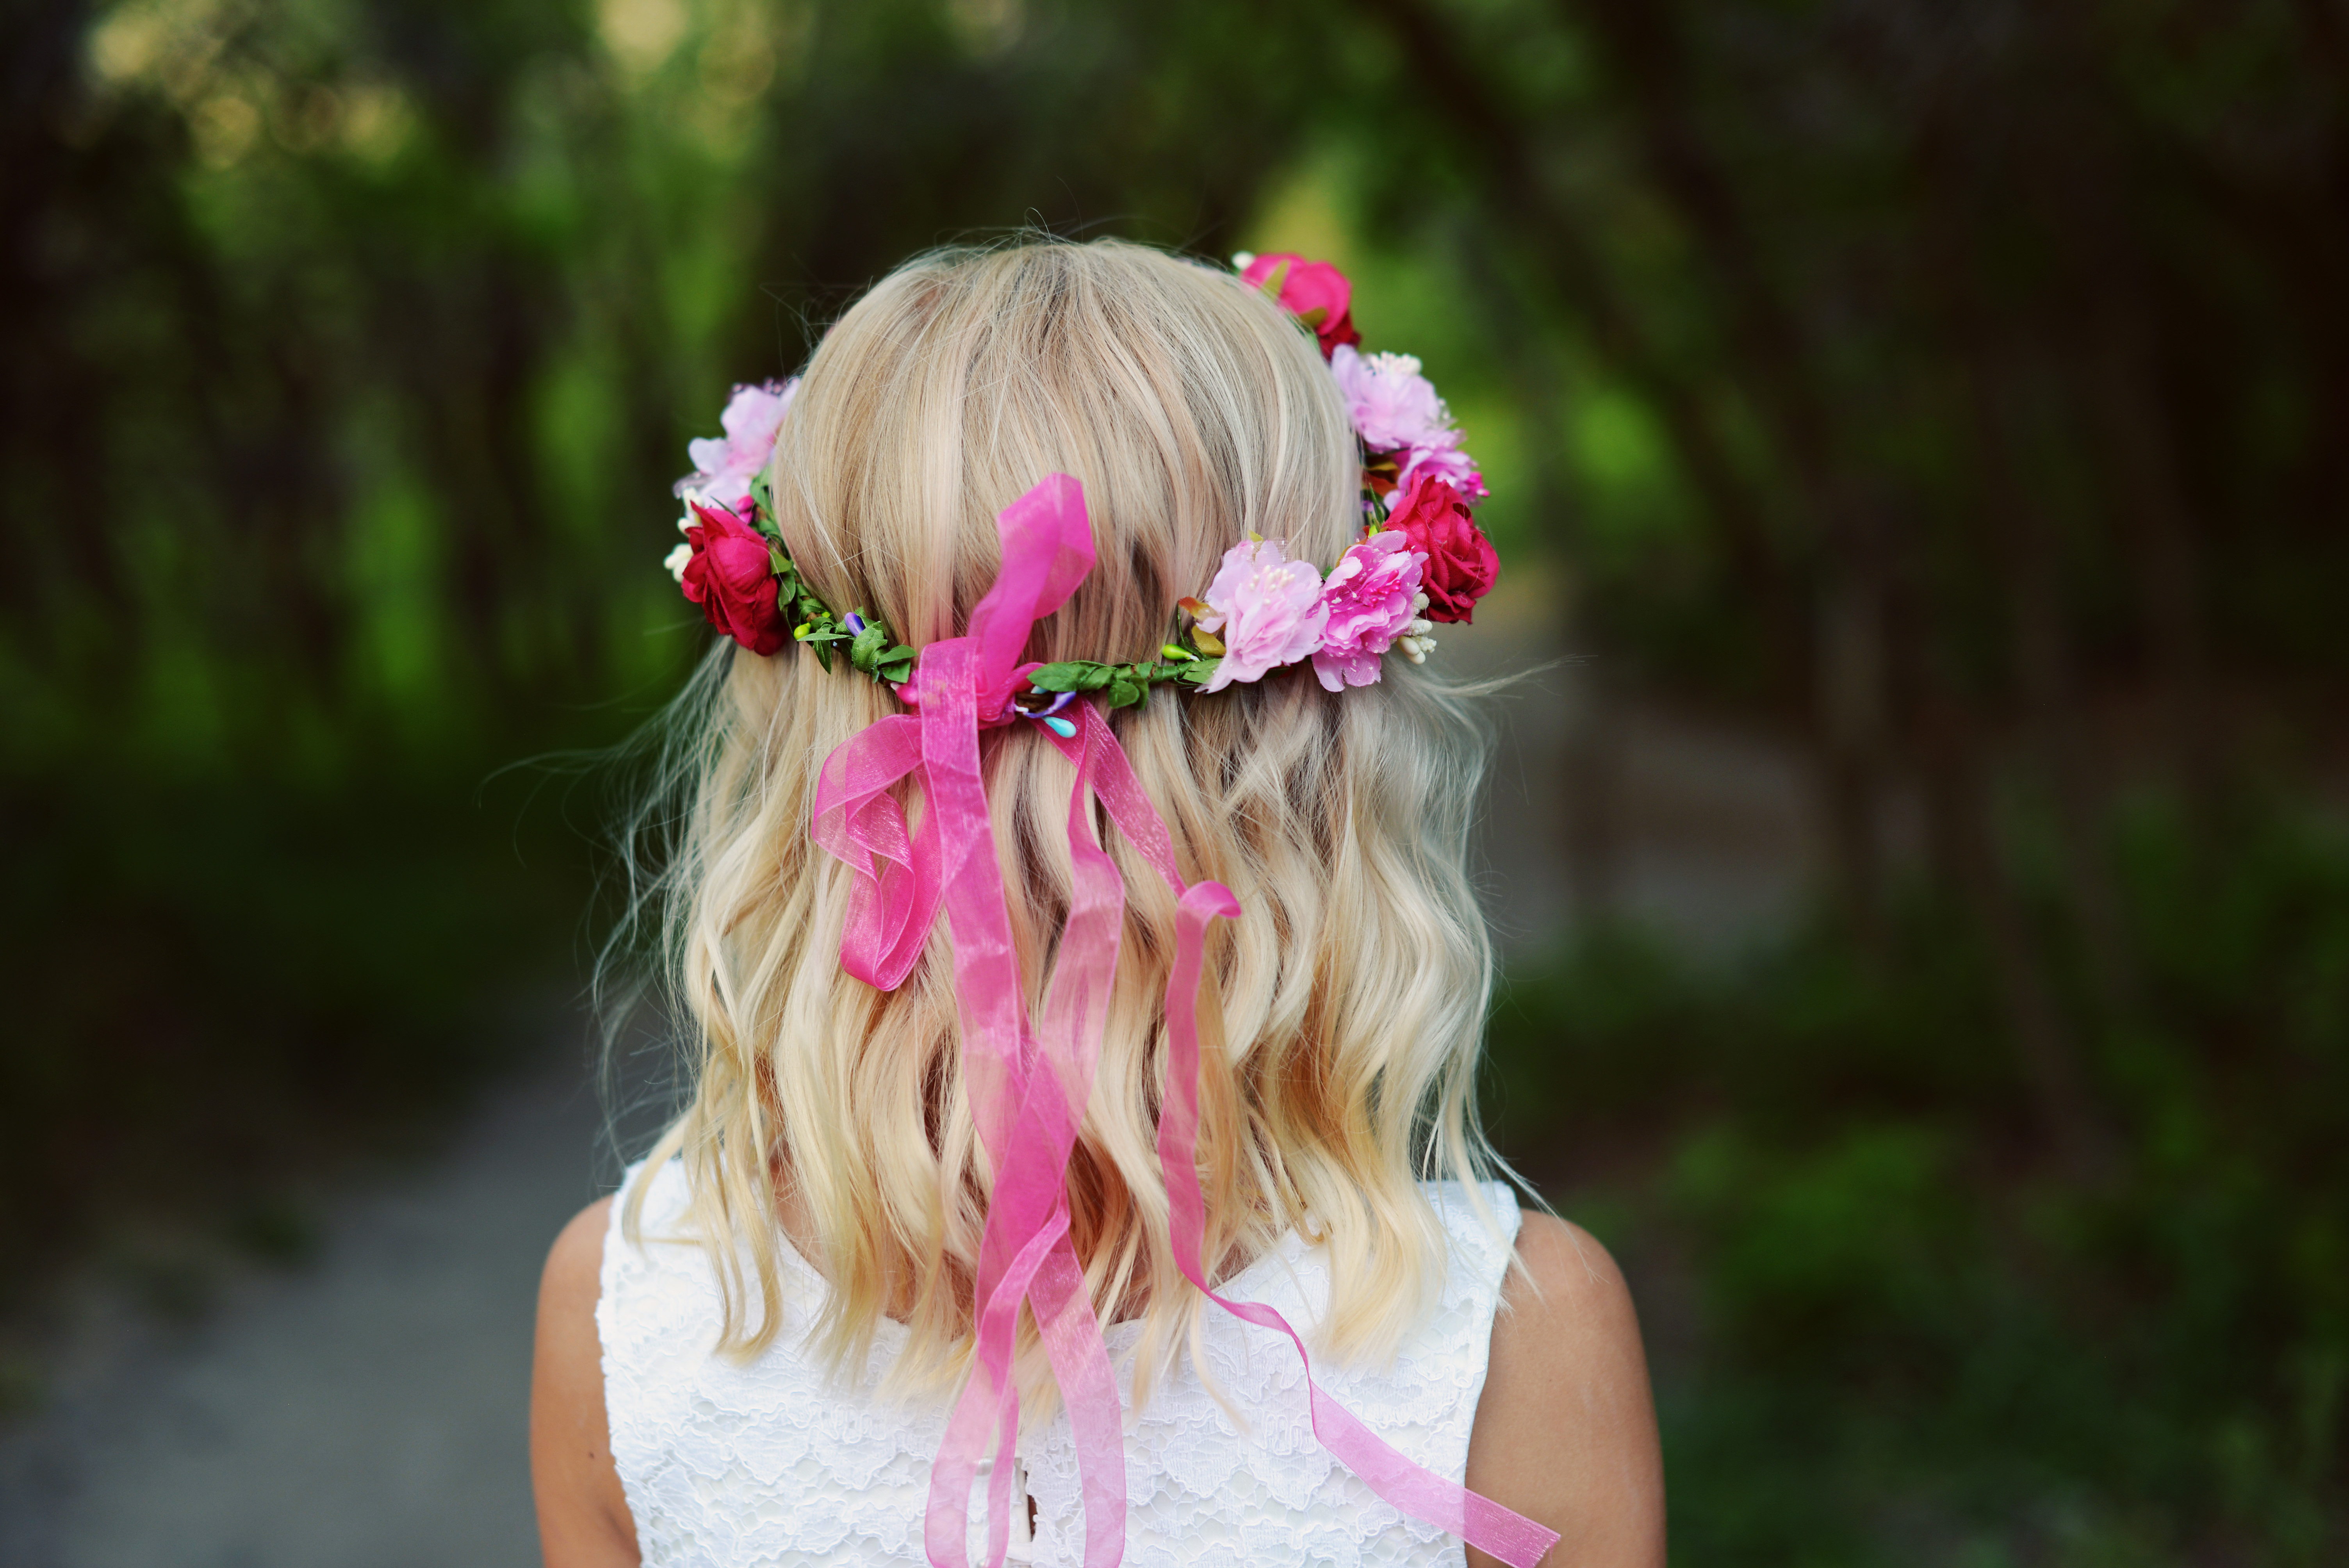 See Our Range Of Flower Girl Hair Accessories To Match The